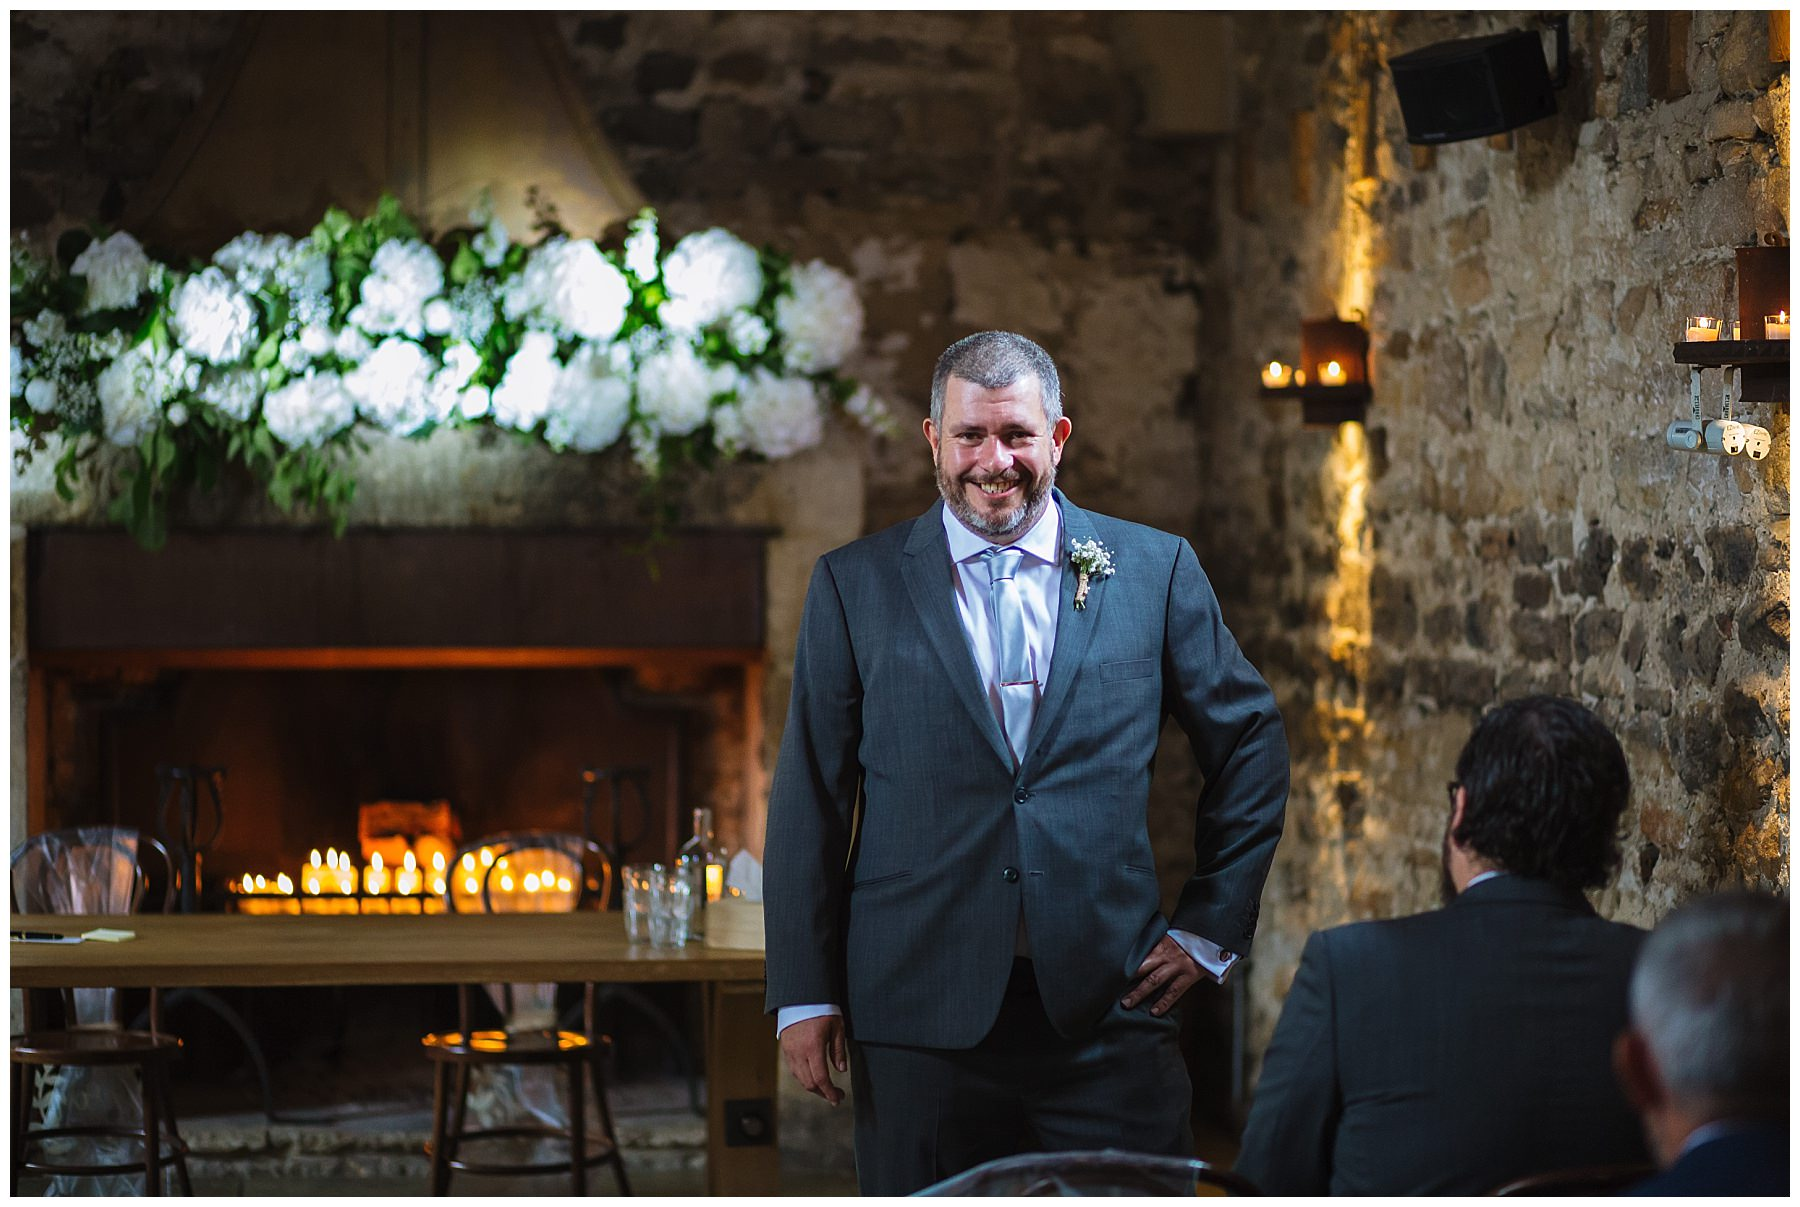 groom at healey barn nervously awaiting his bride